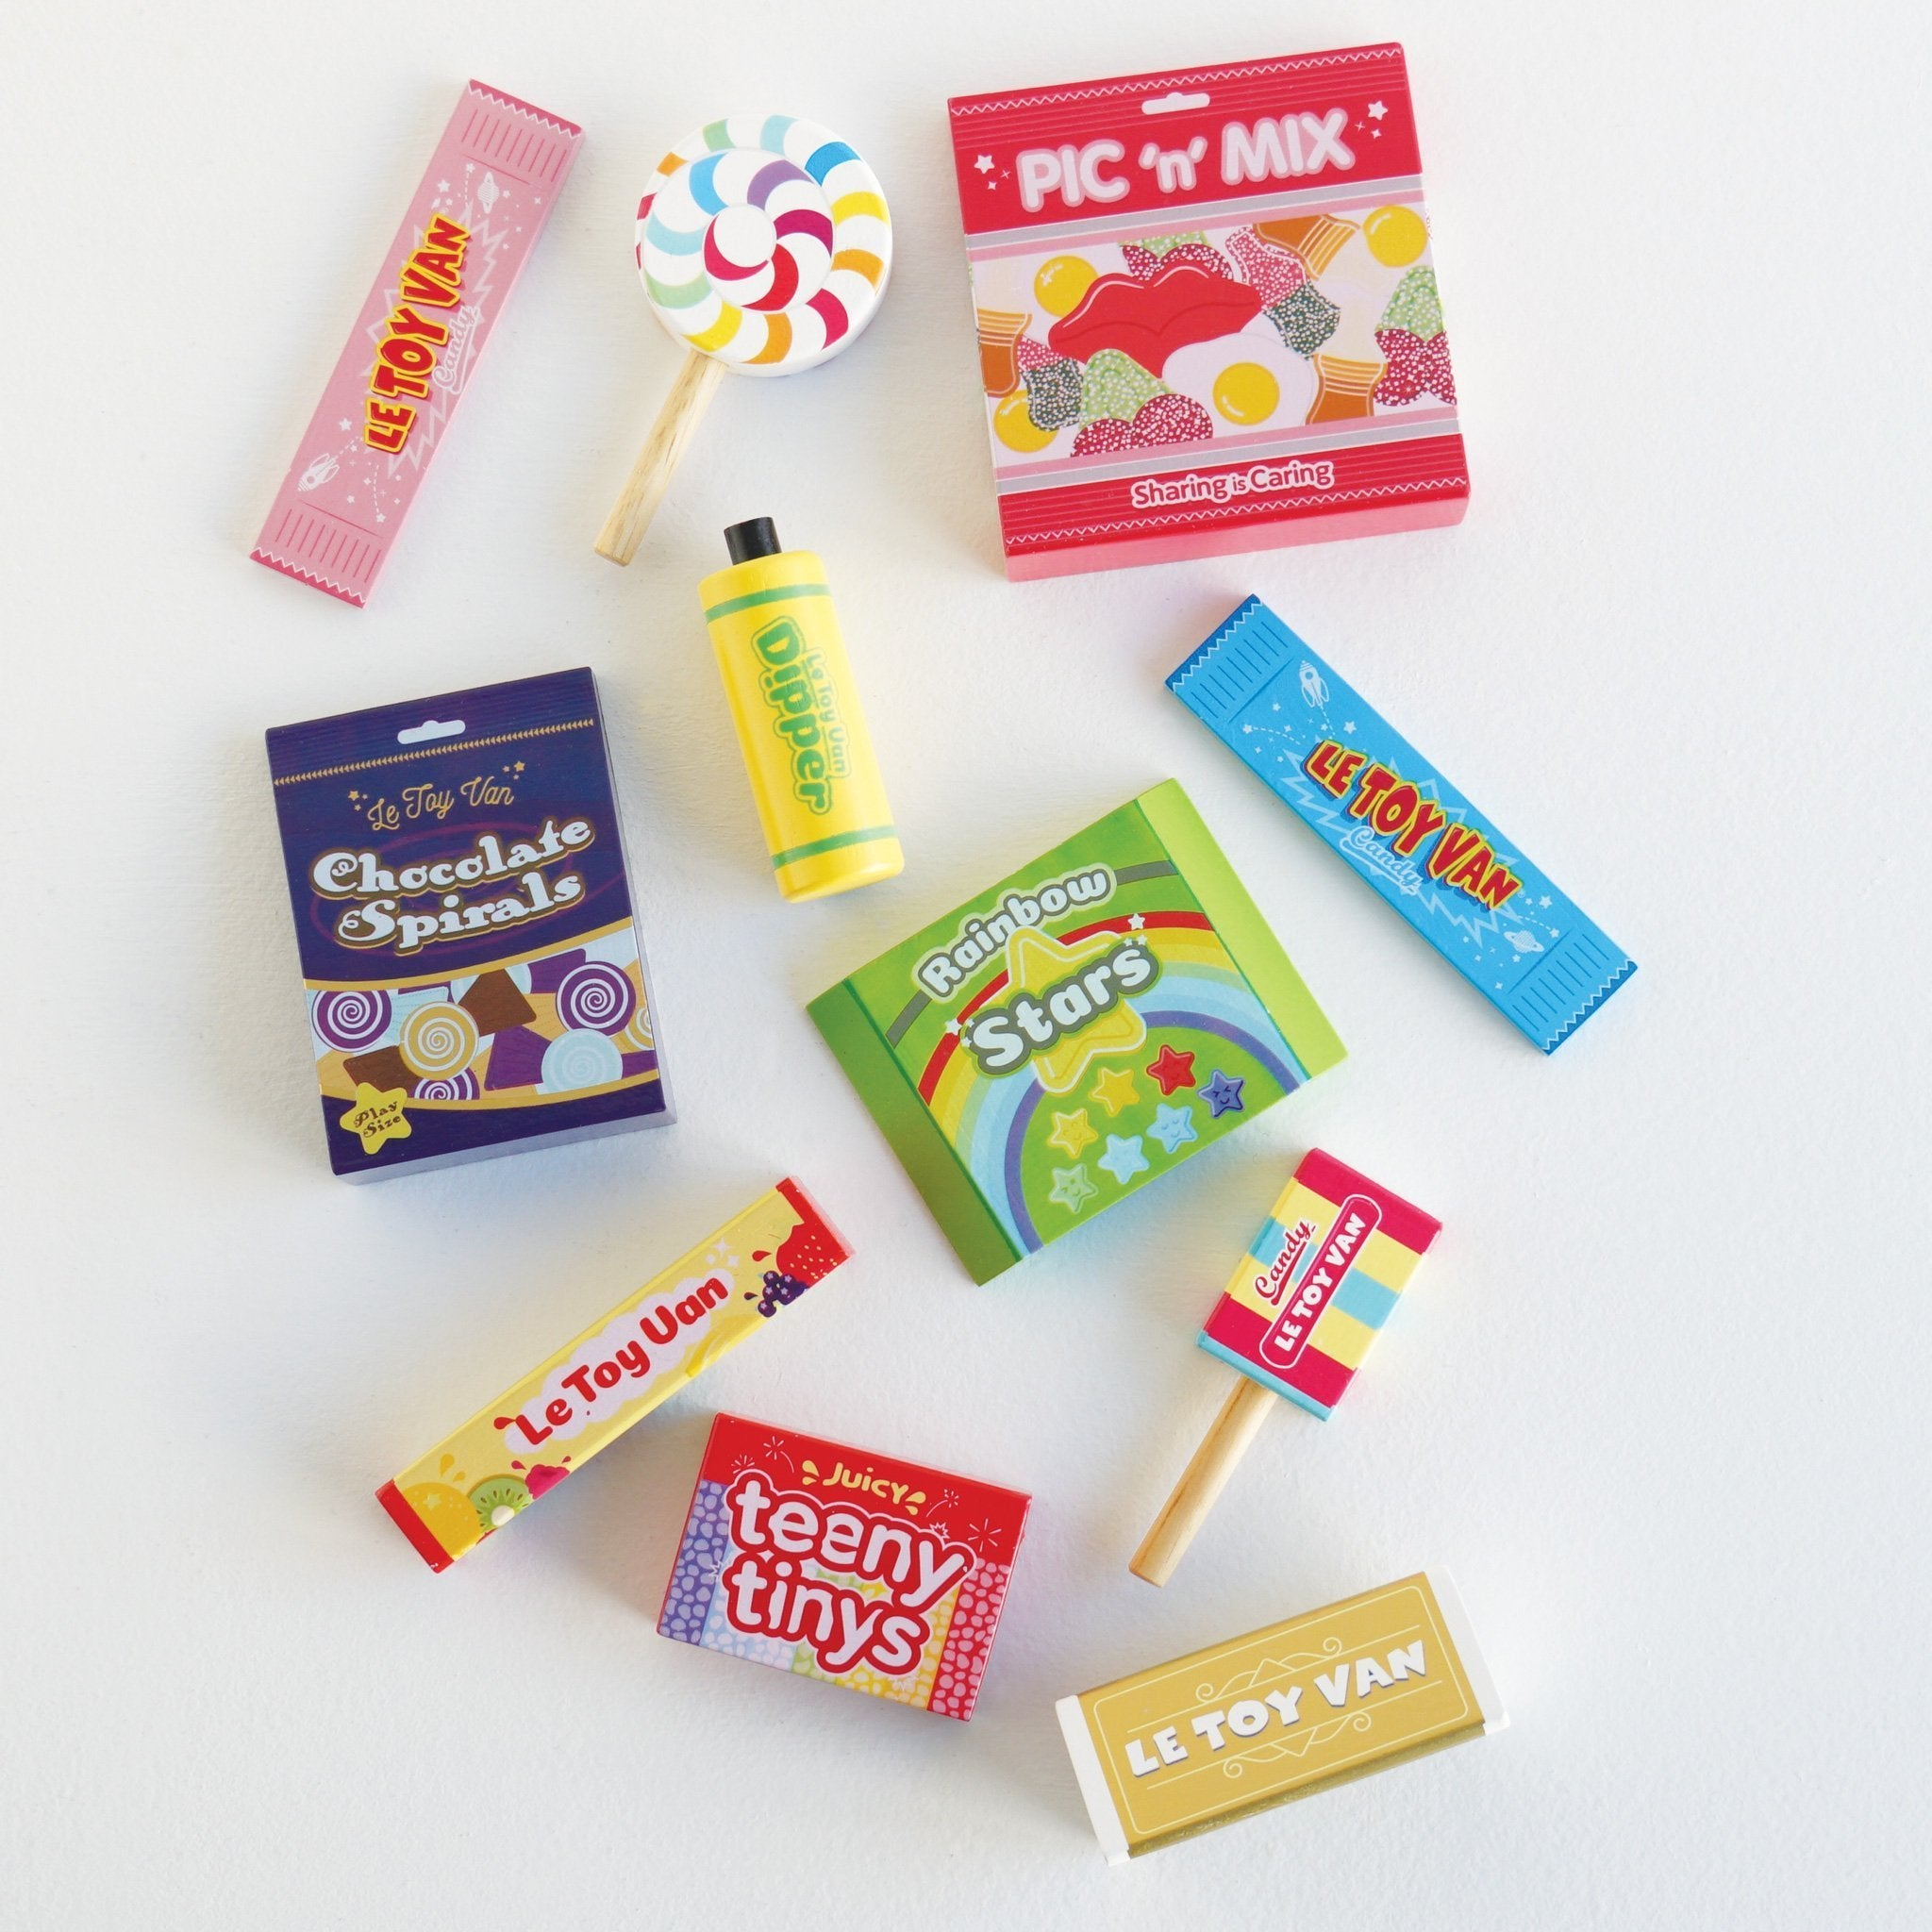 Sweet & Candy - Pic'n'Mix